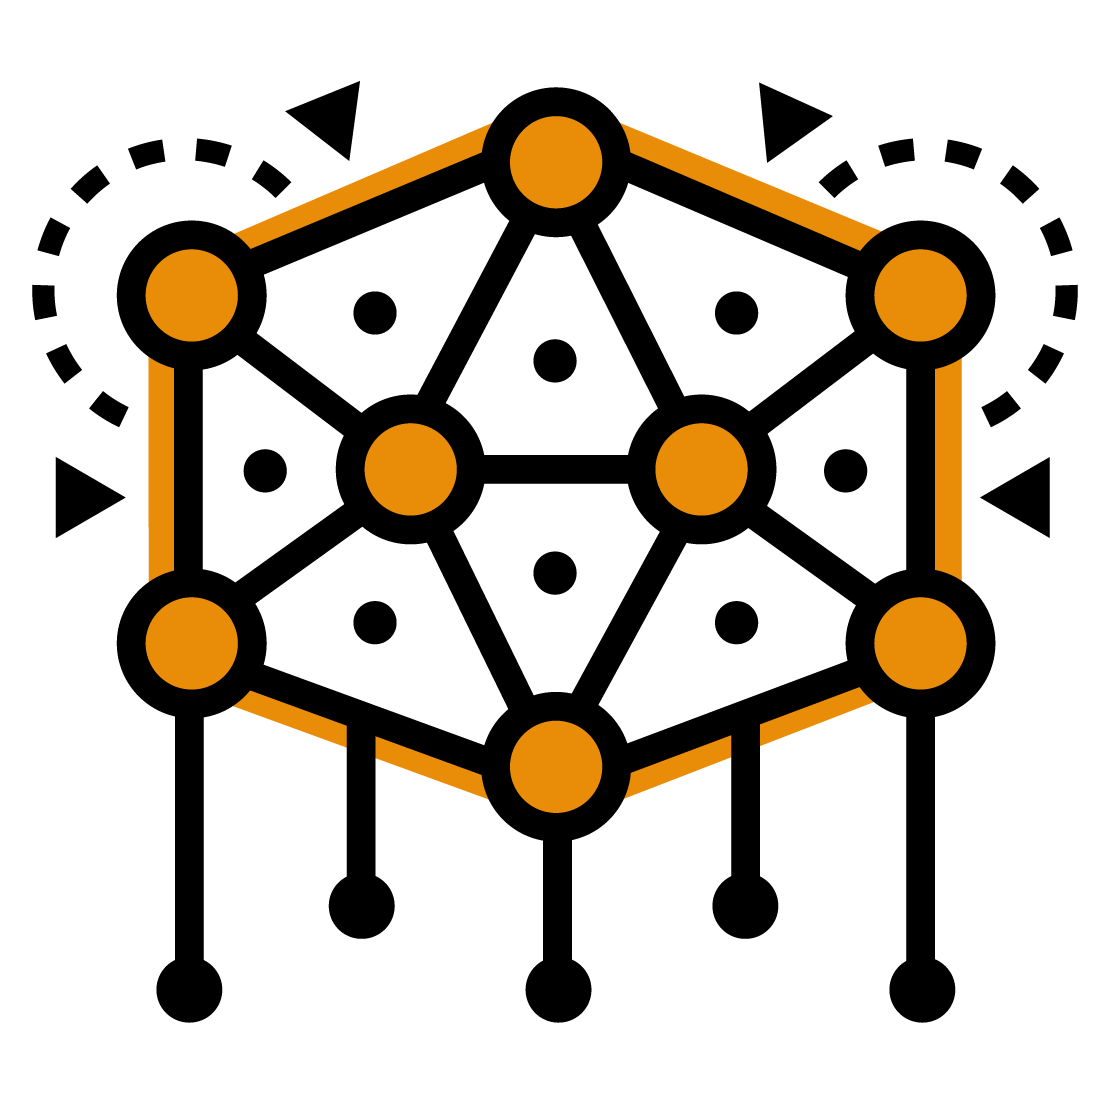 Interconnected nodes representing machine learning